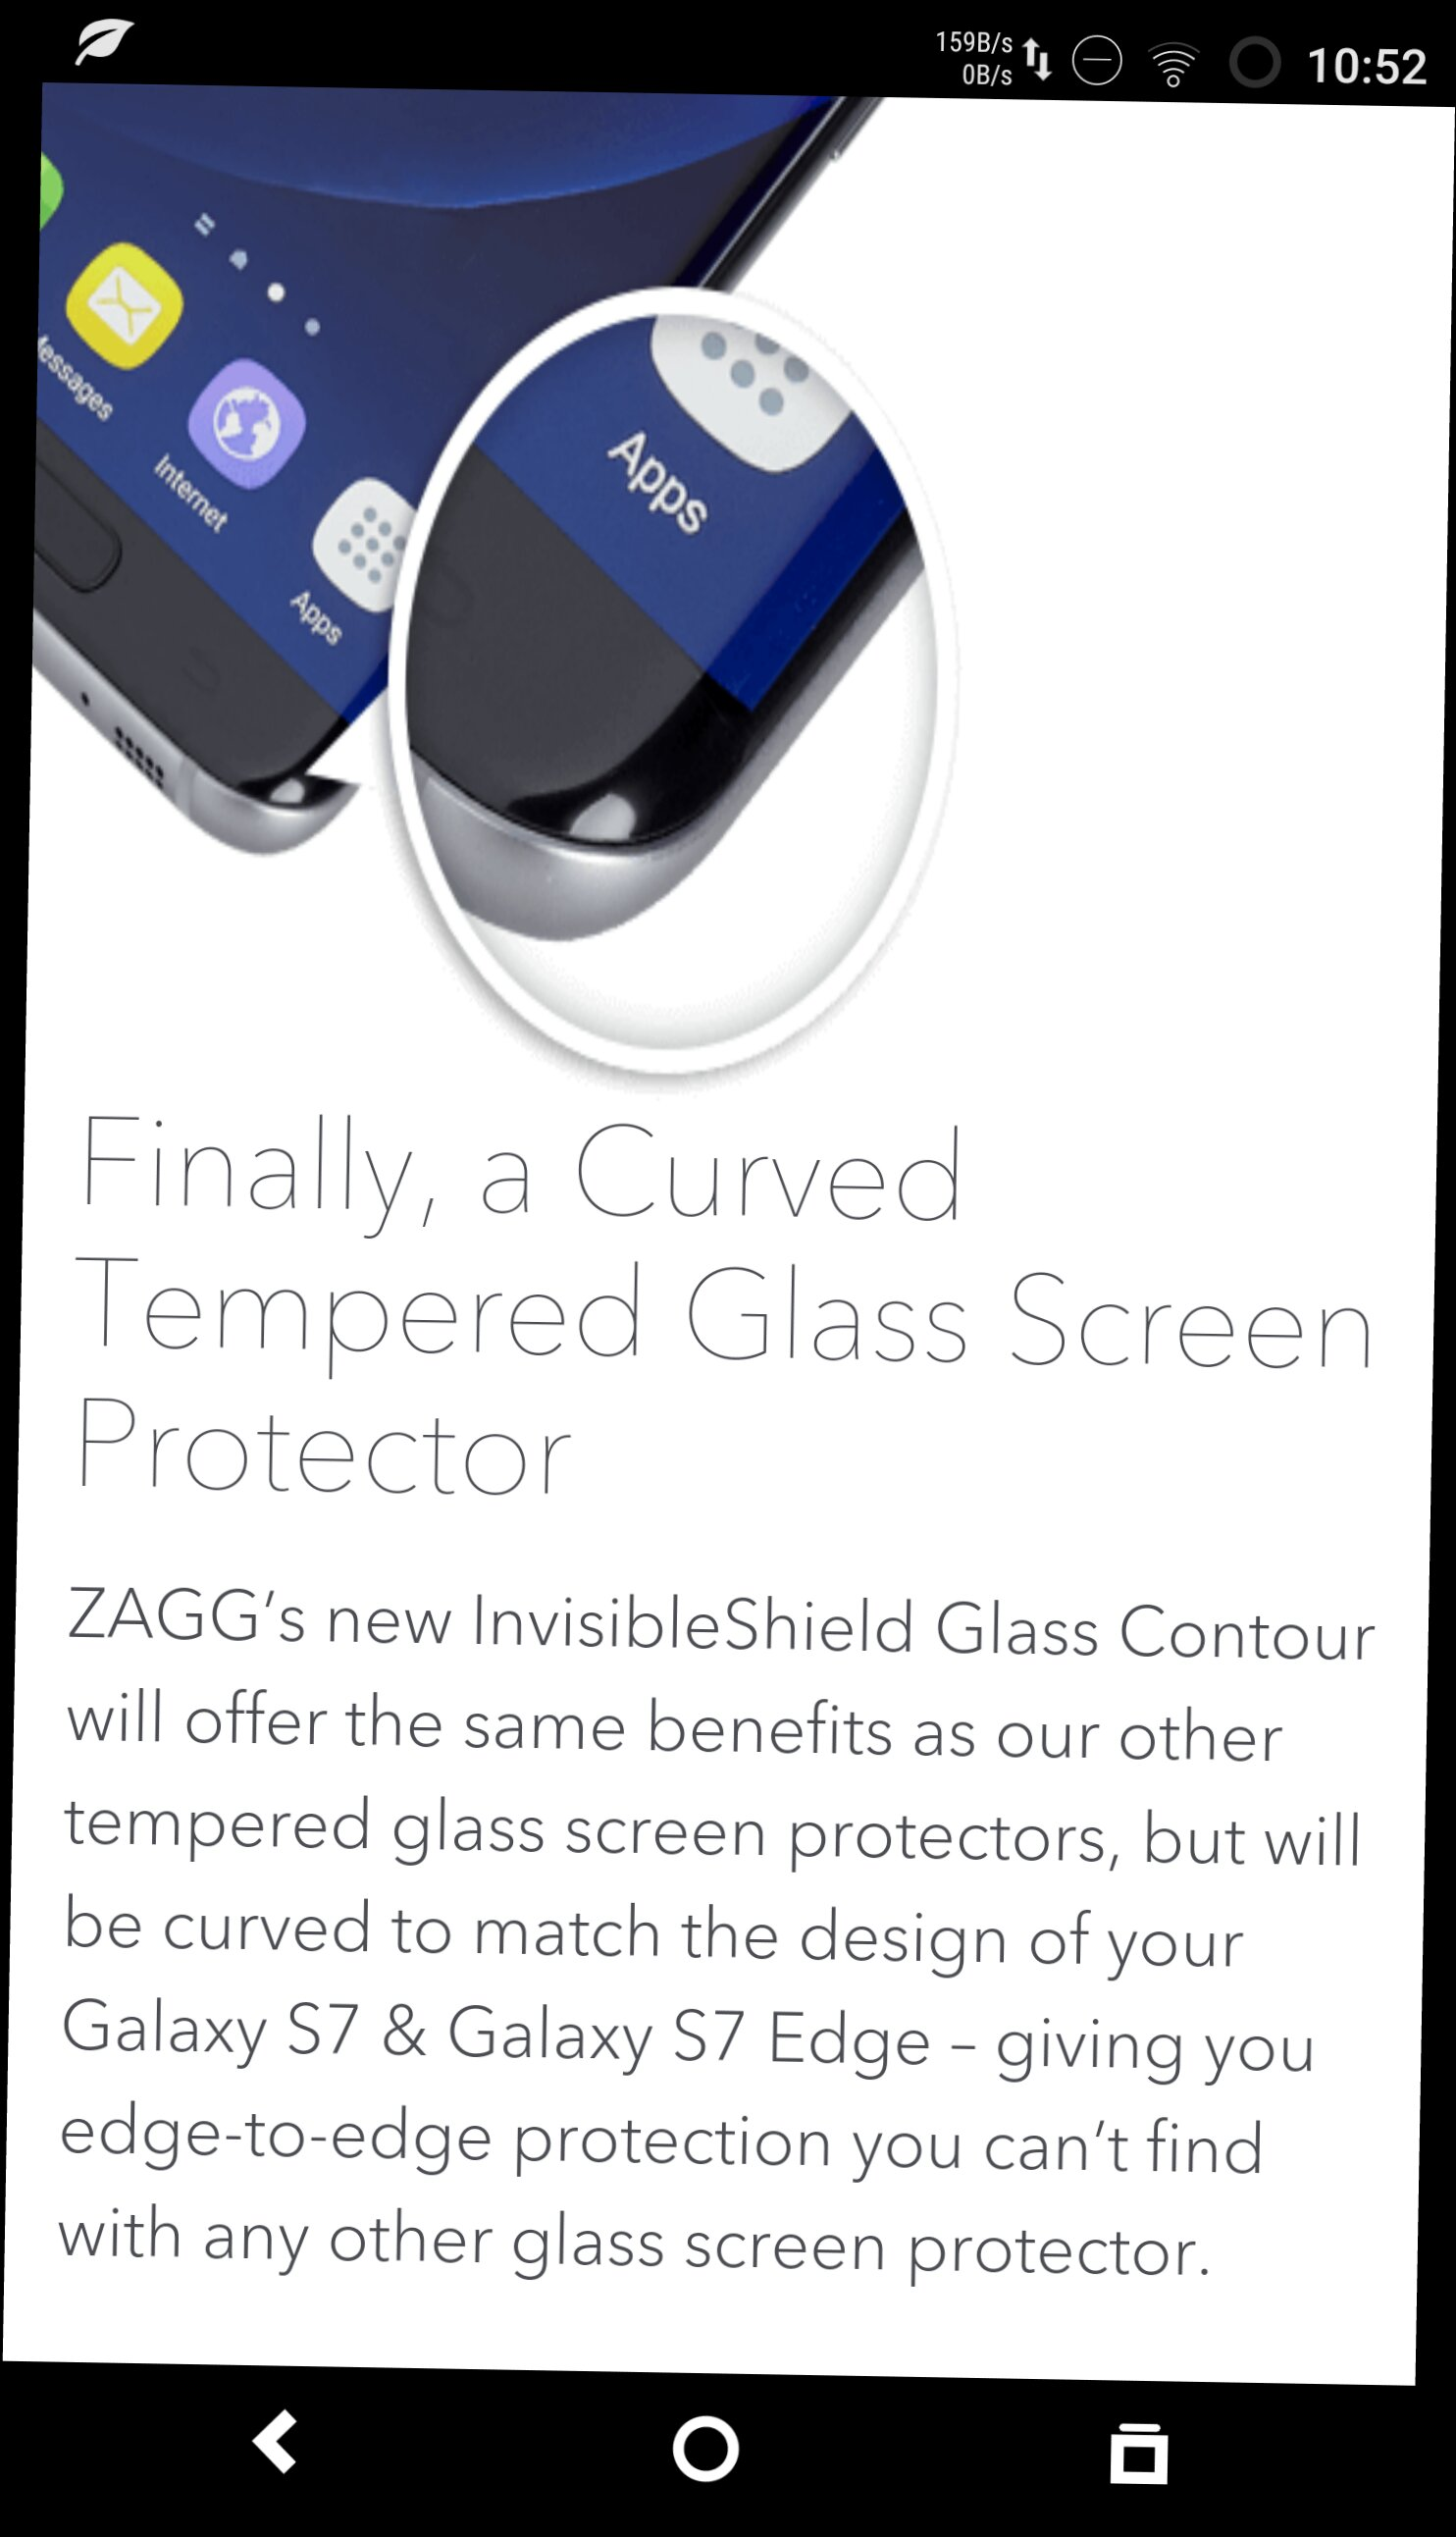 S7 Edge Tempered Glass Screen Protectors